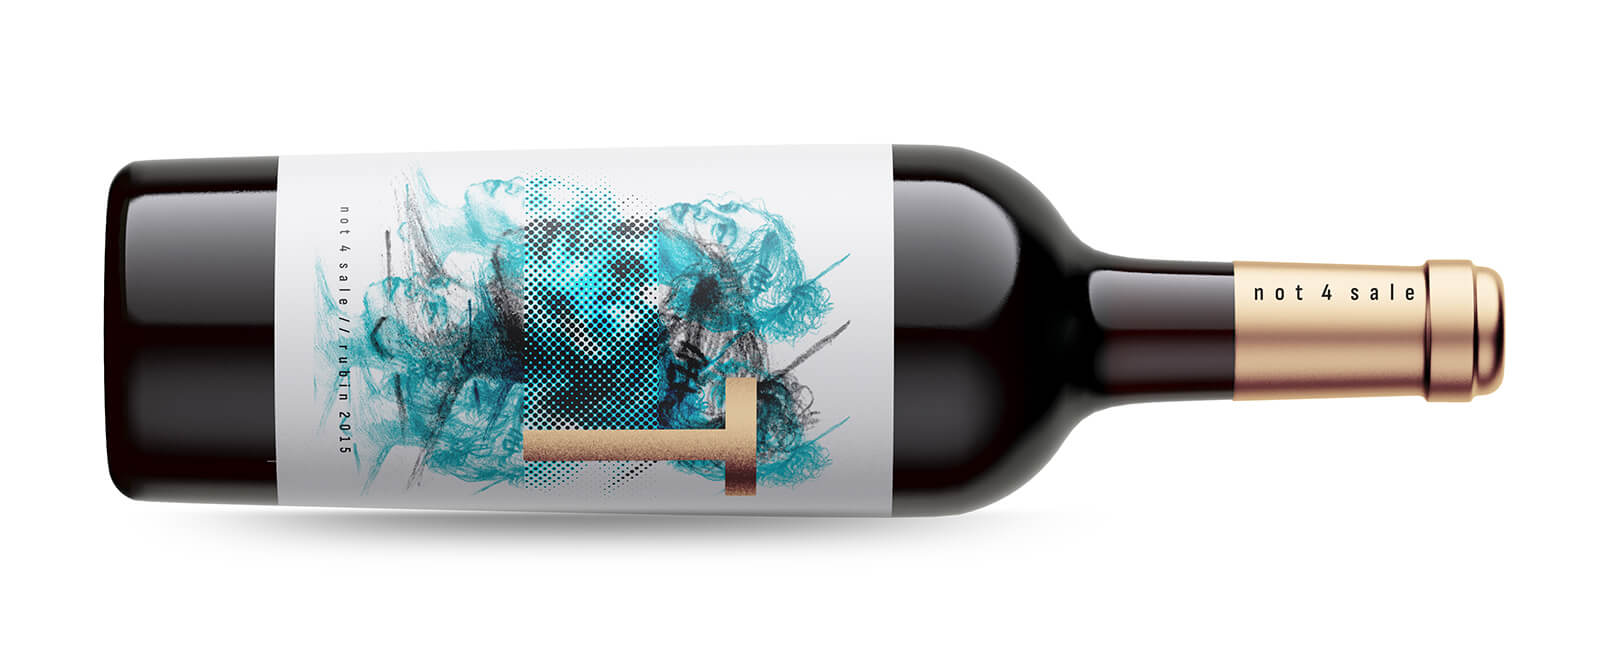 Not4Sale by T modern wine packaging design